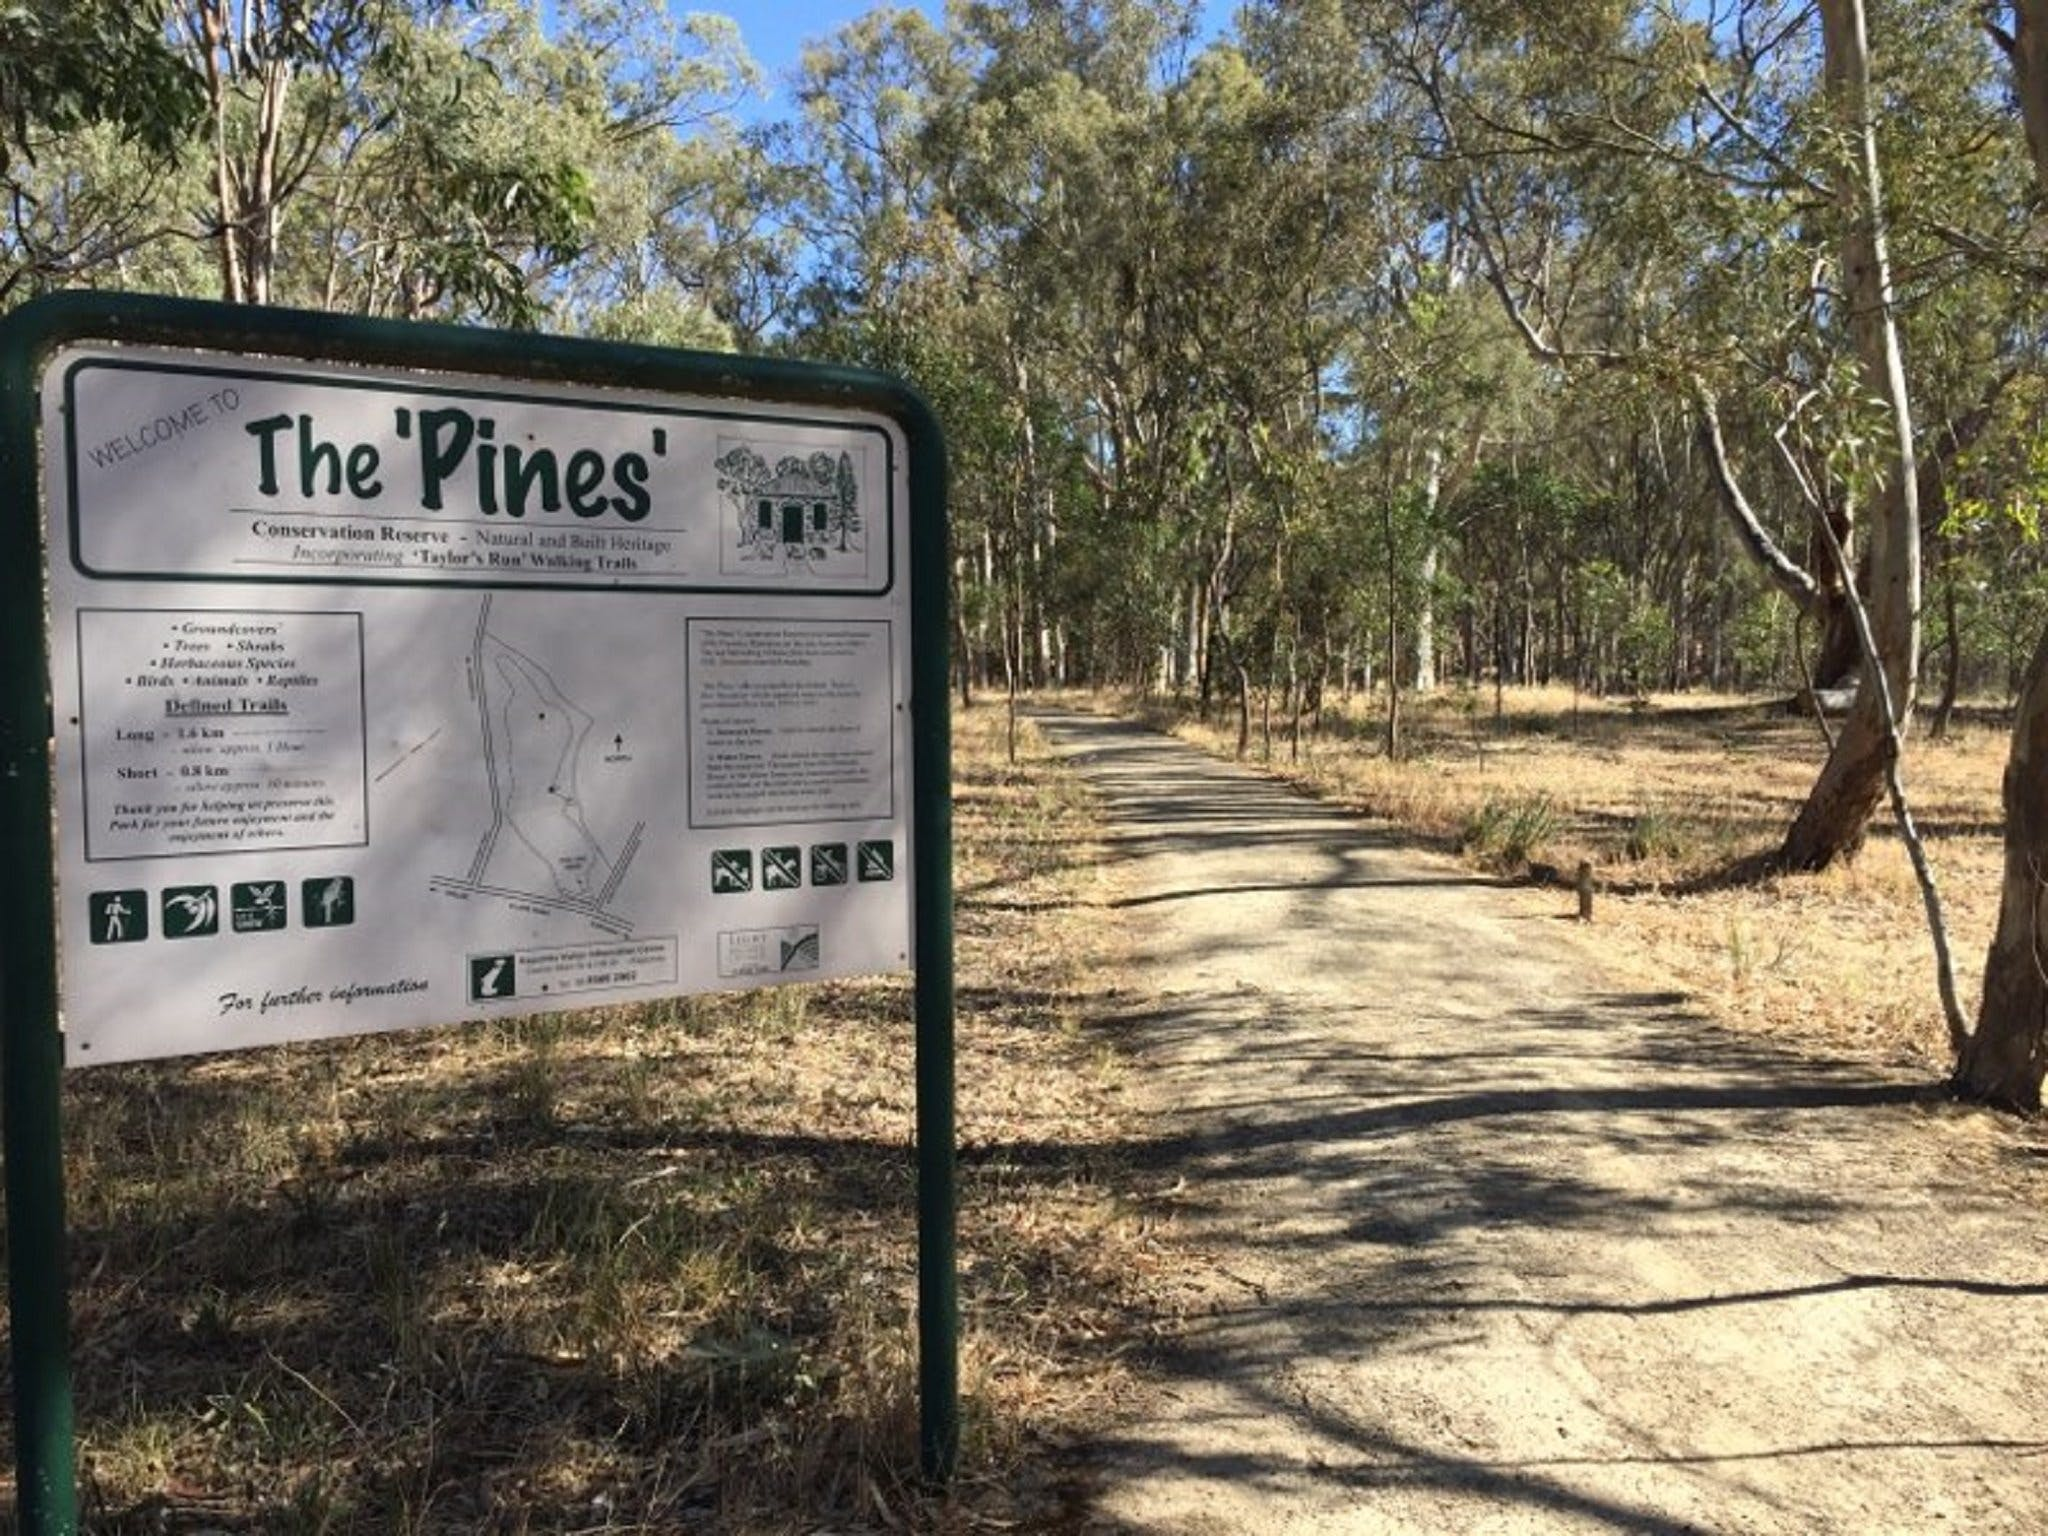 The Pines Conservation Reserve - ACT Tourism